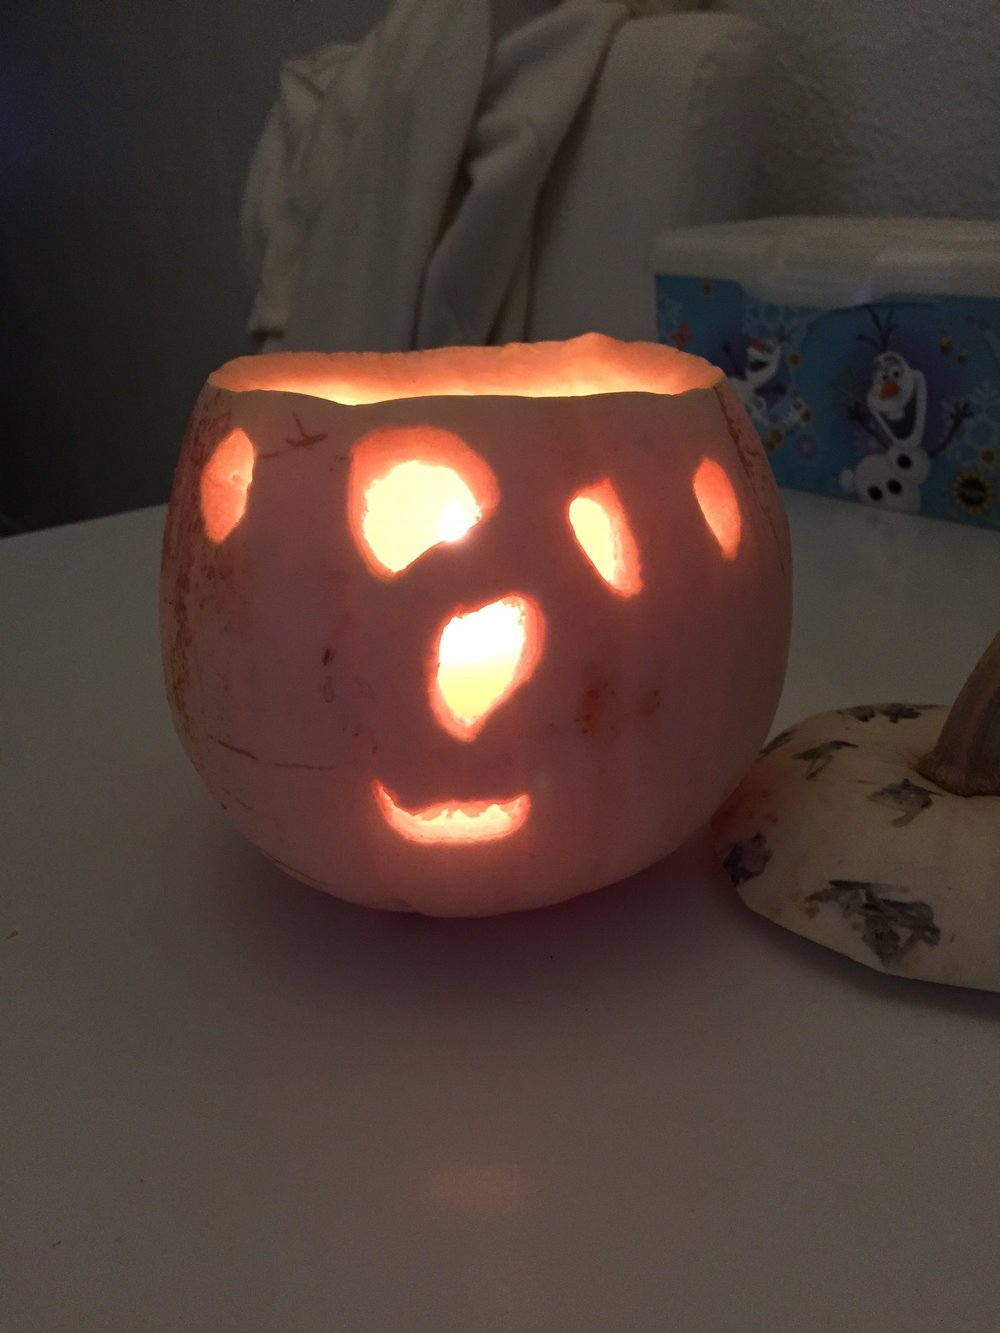 My youngest son's Jack O' Lantern from last Halloween - how happy is that? :)